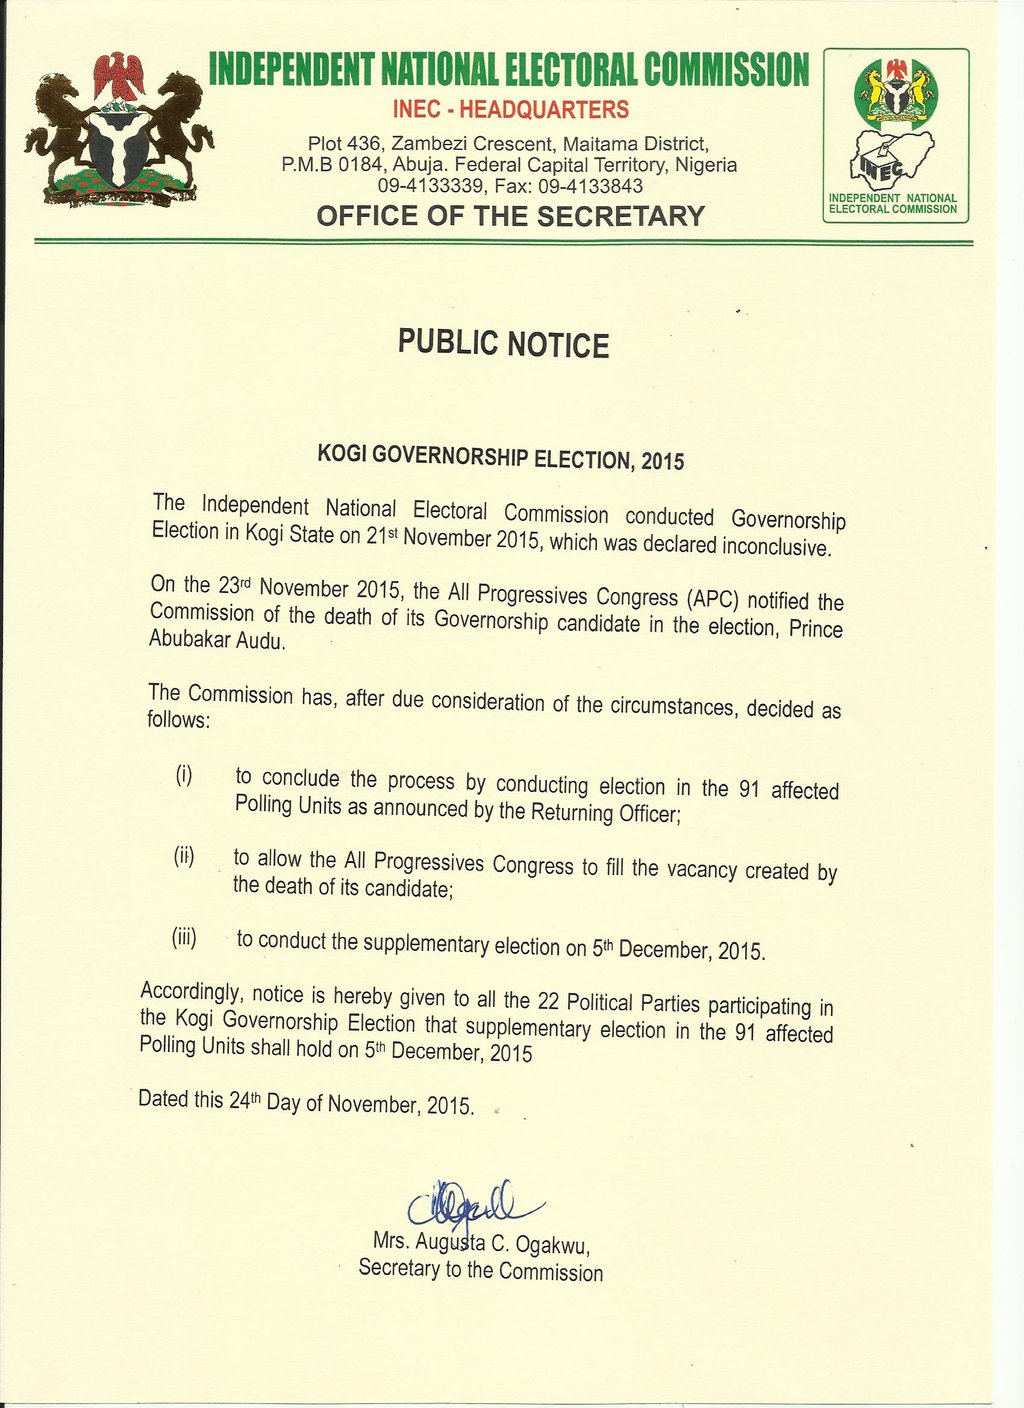 Just In: INEC Schedules Supplementary Elections In Kogi, Releases Statement (READ)